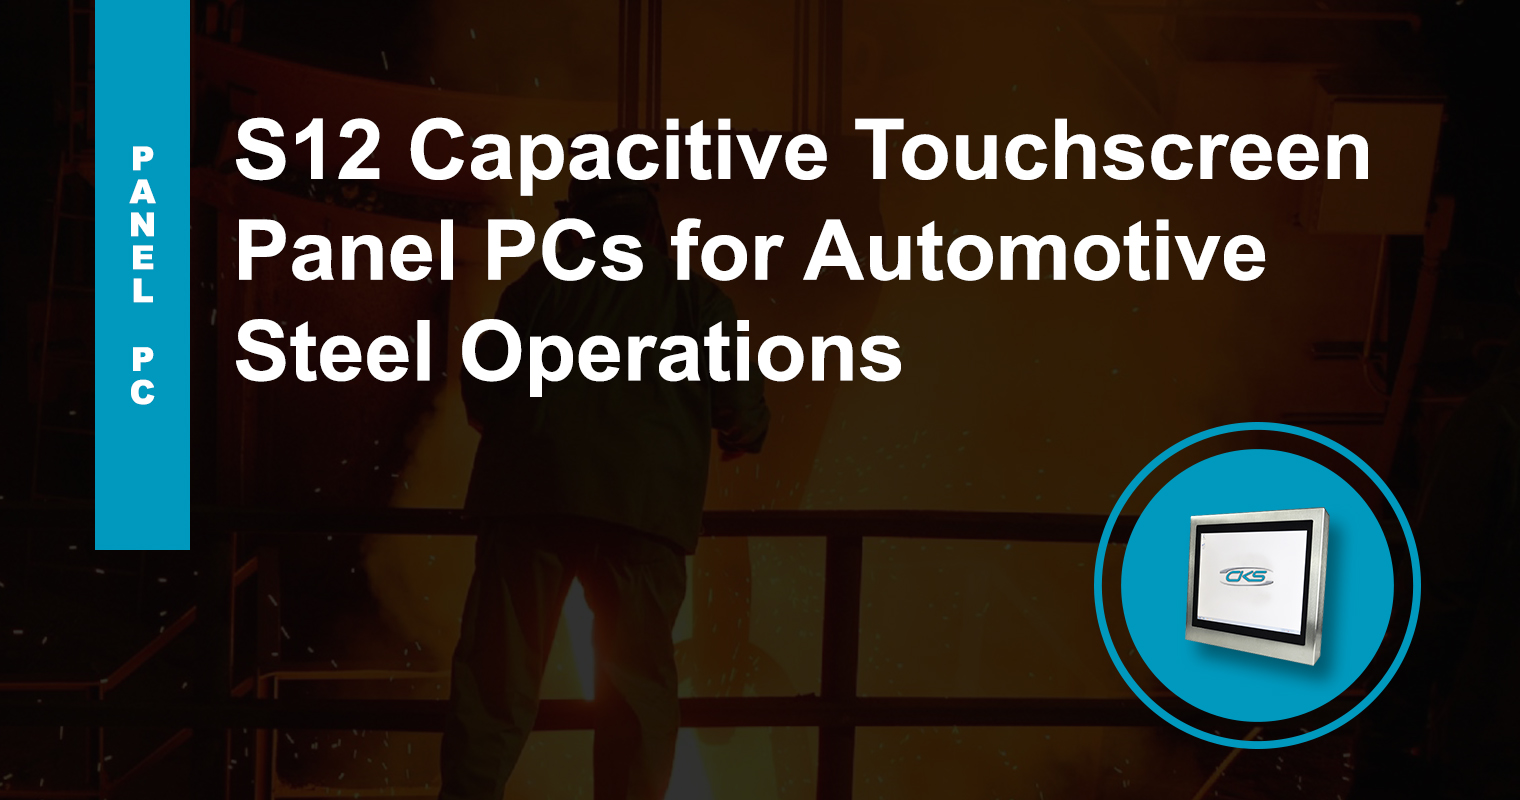 """Upgrade Automotive Steel Production with 12.1"""" Panel PC"""